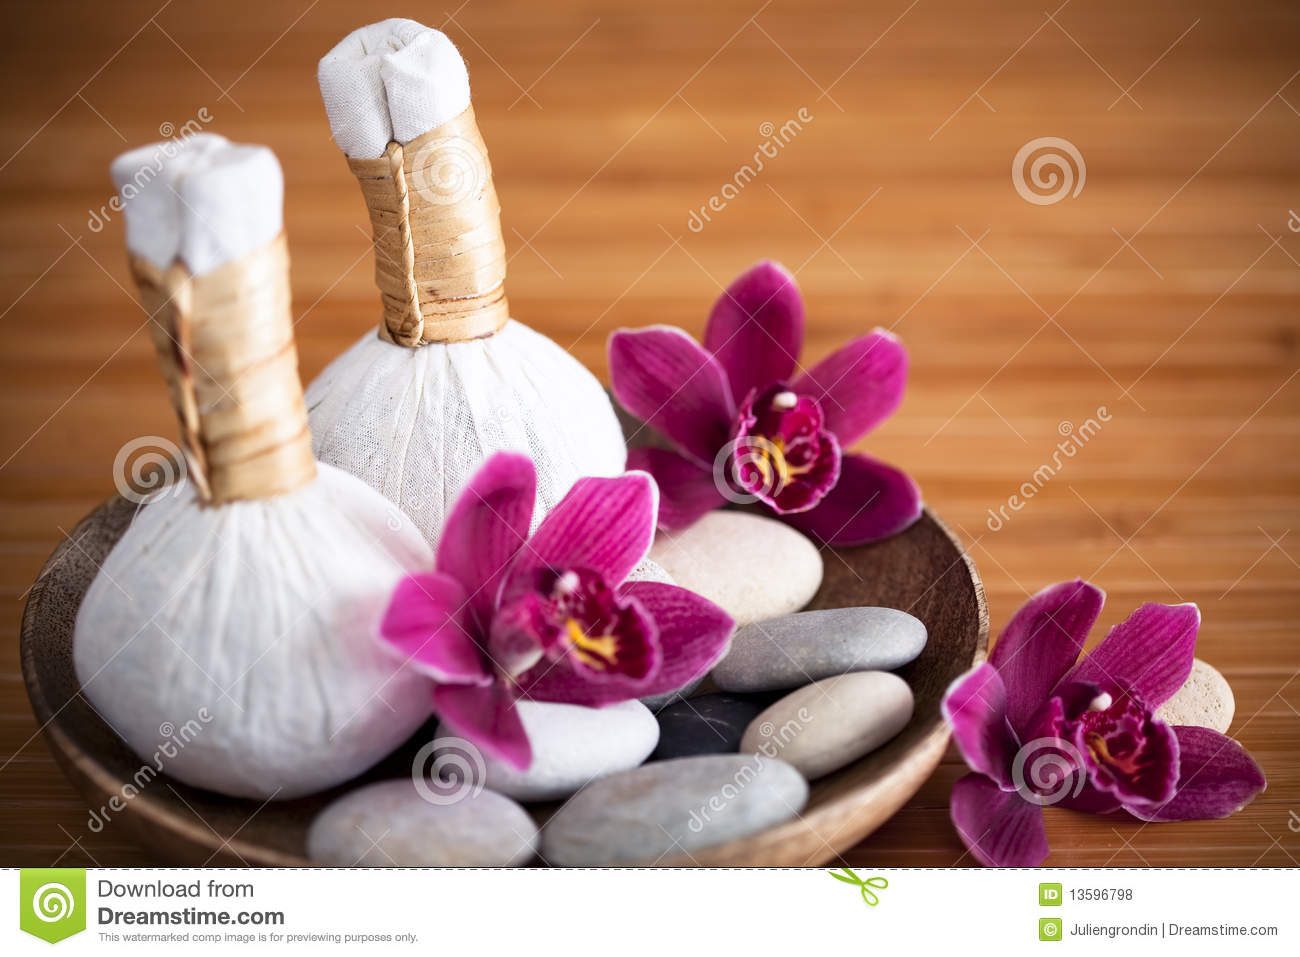 Herbal massage compresses